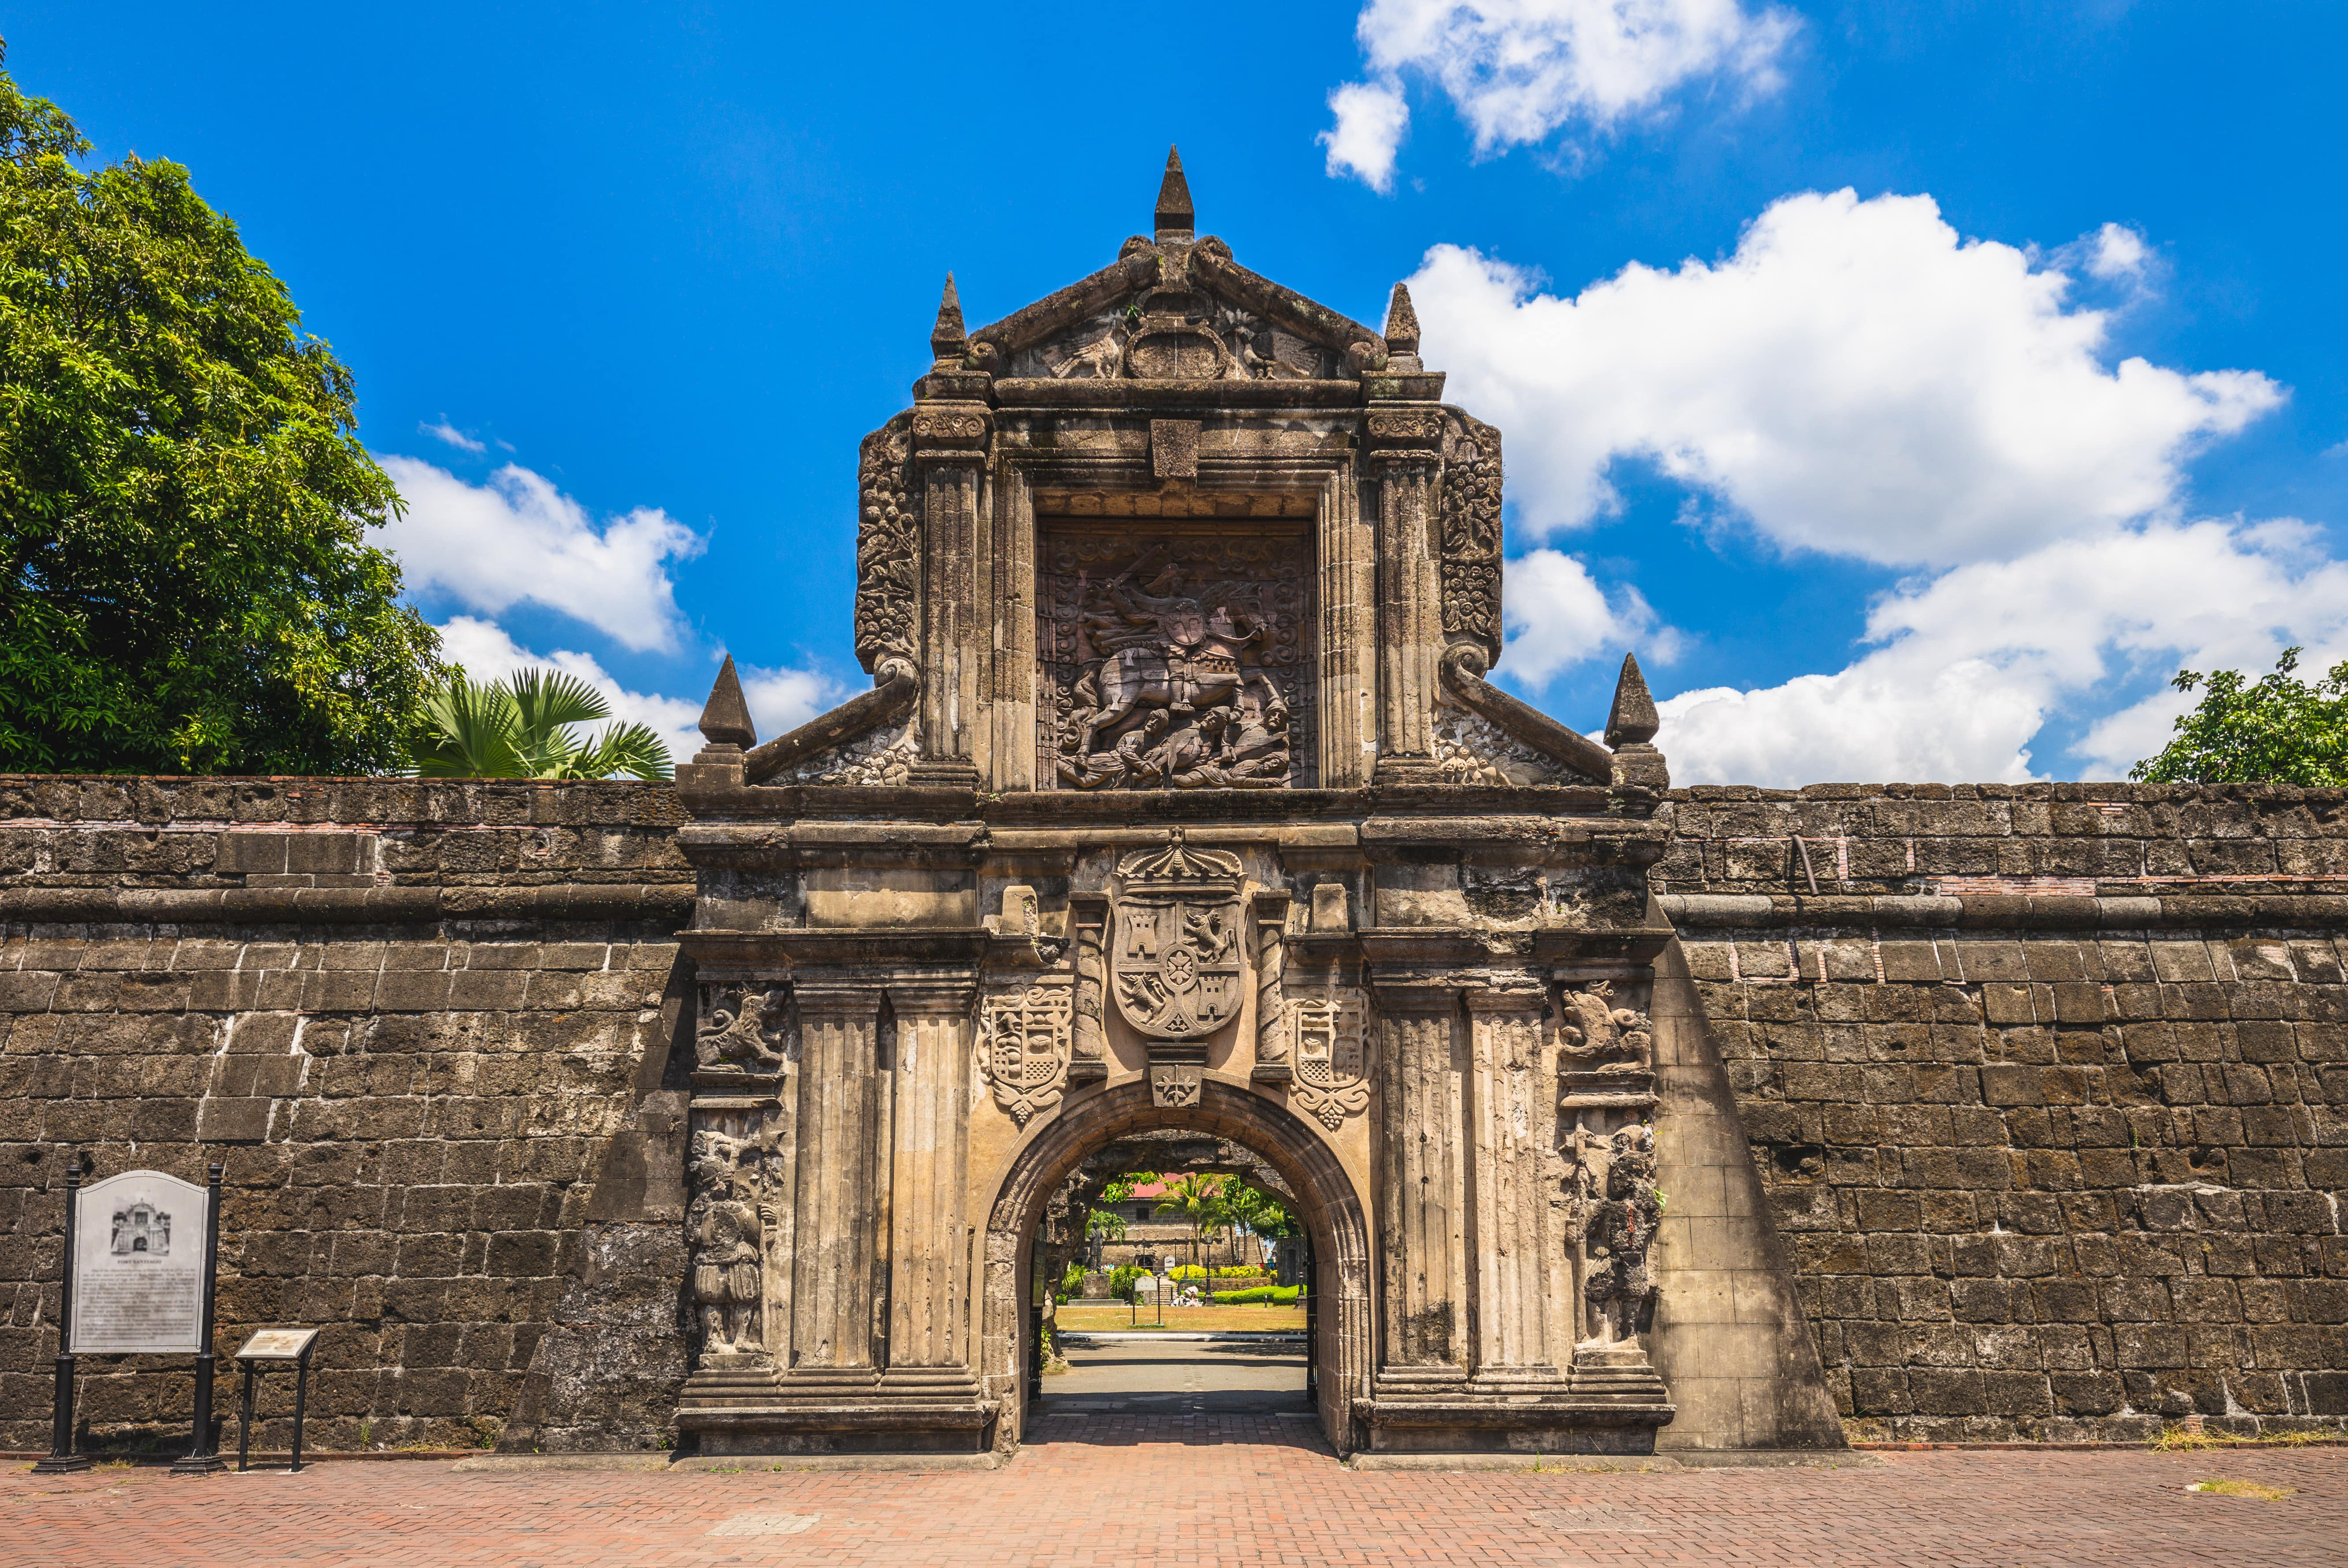 Old stone structure of Fort Santiago in Intramuros